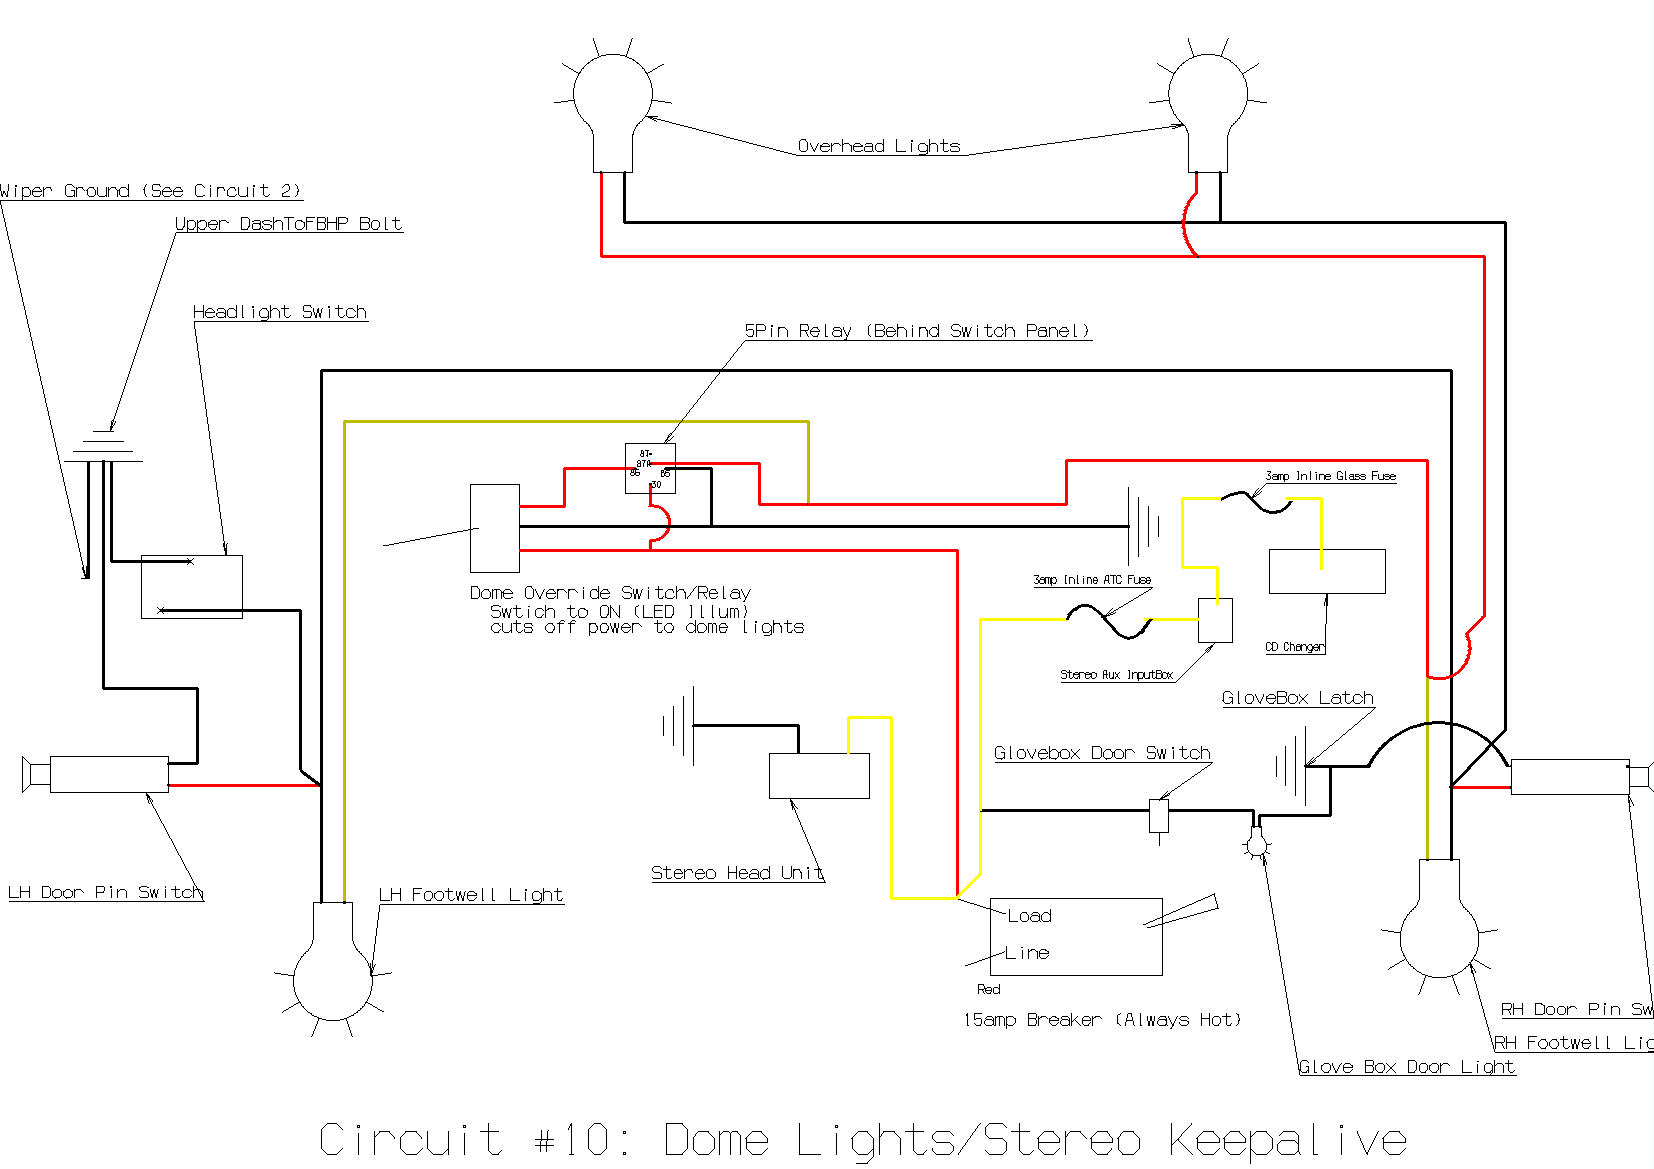 ford ranger wiring diagram wirdig 98 ford ranger wiper wiring diagram also gmc yukon wiring diagram